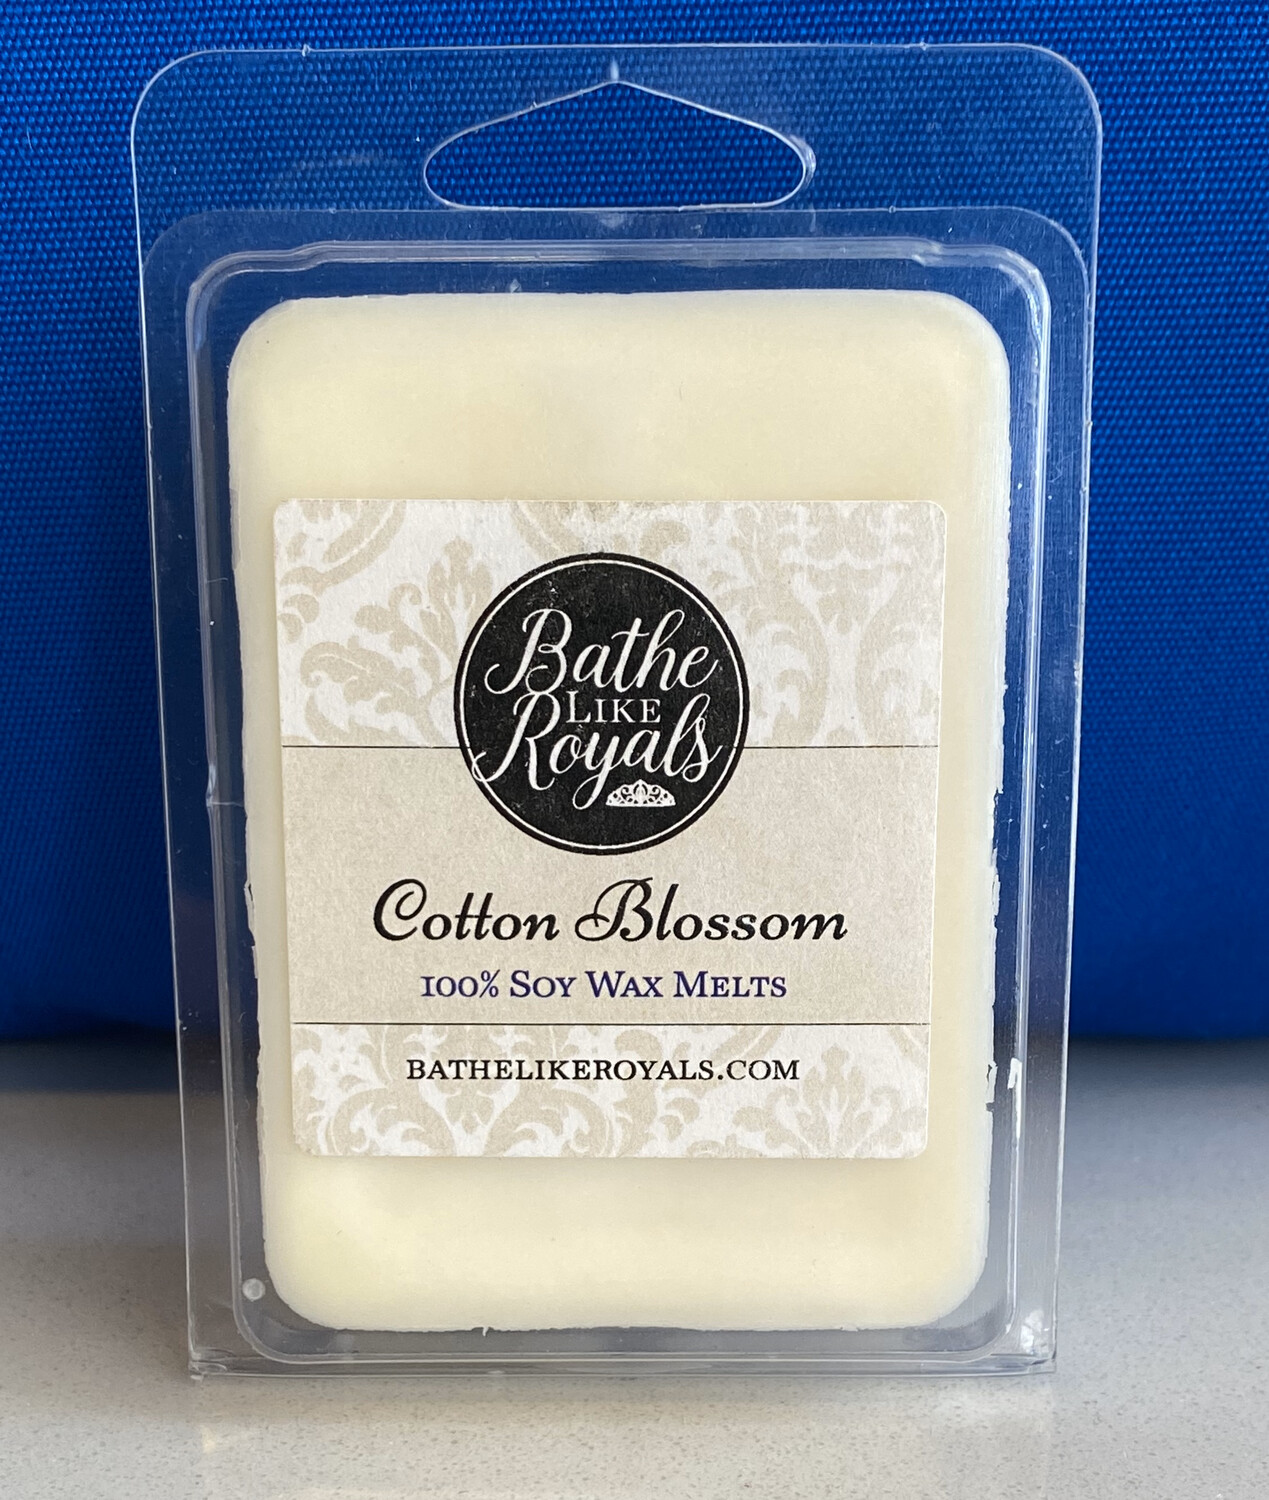 Cotton Blossom - 3.5oz Wax Melts